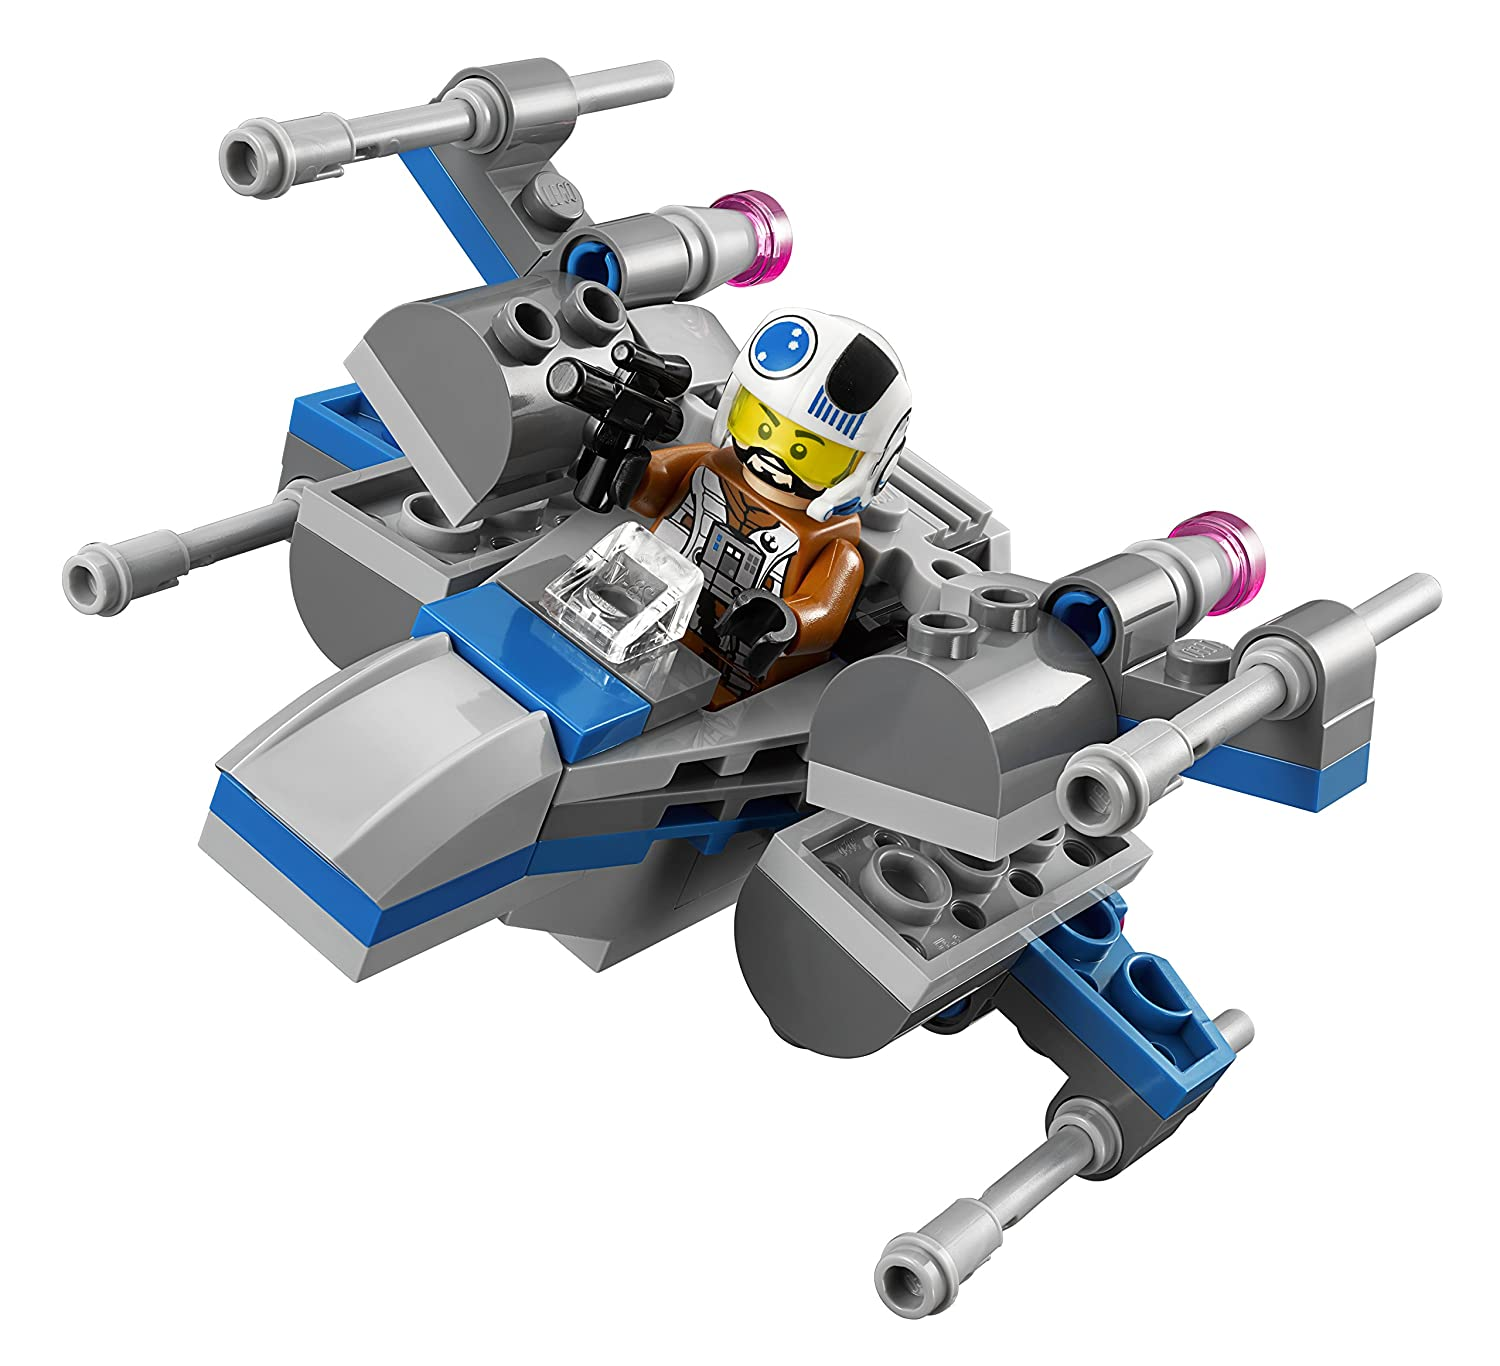 Lego Star Wars X Wing Starfighter: LEGO Star Wars Resistance X-Wing Fighter 75125